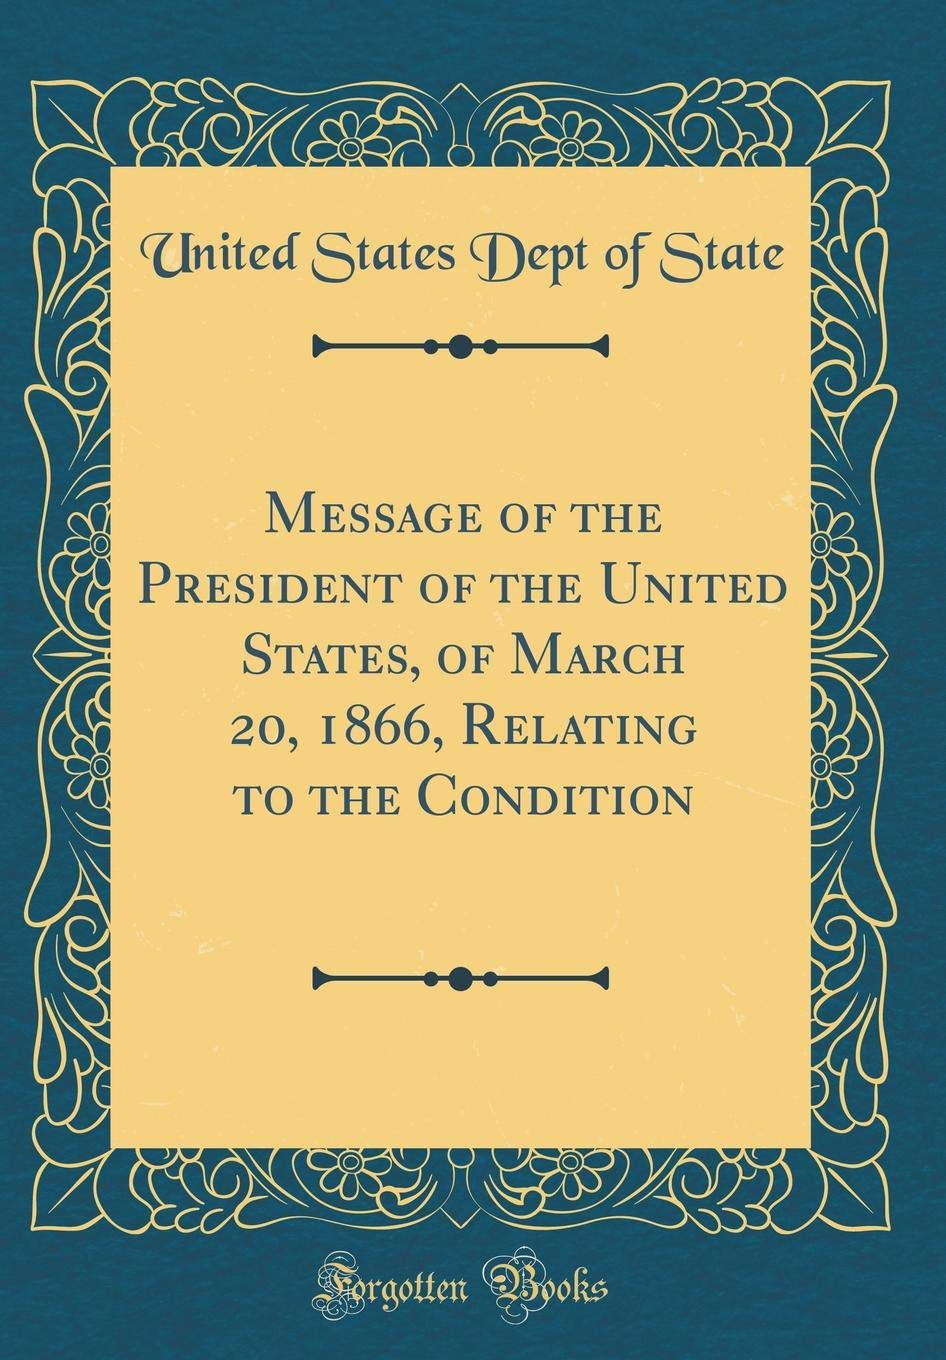 Read Online Message of the President of the United States, of March 20, 1866, Relating to the Condition (Classic Reprint) PDF